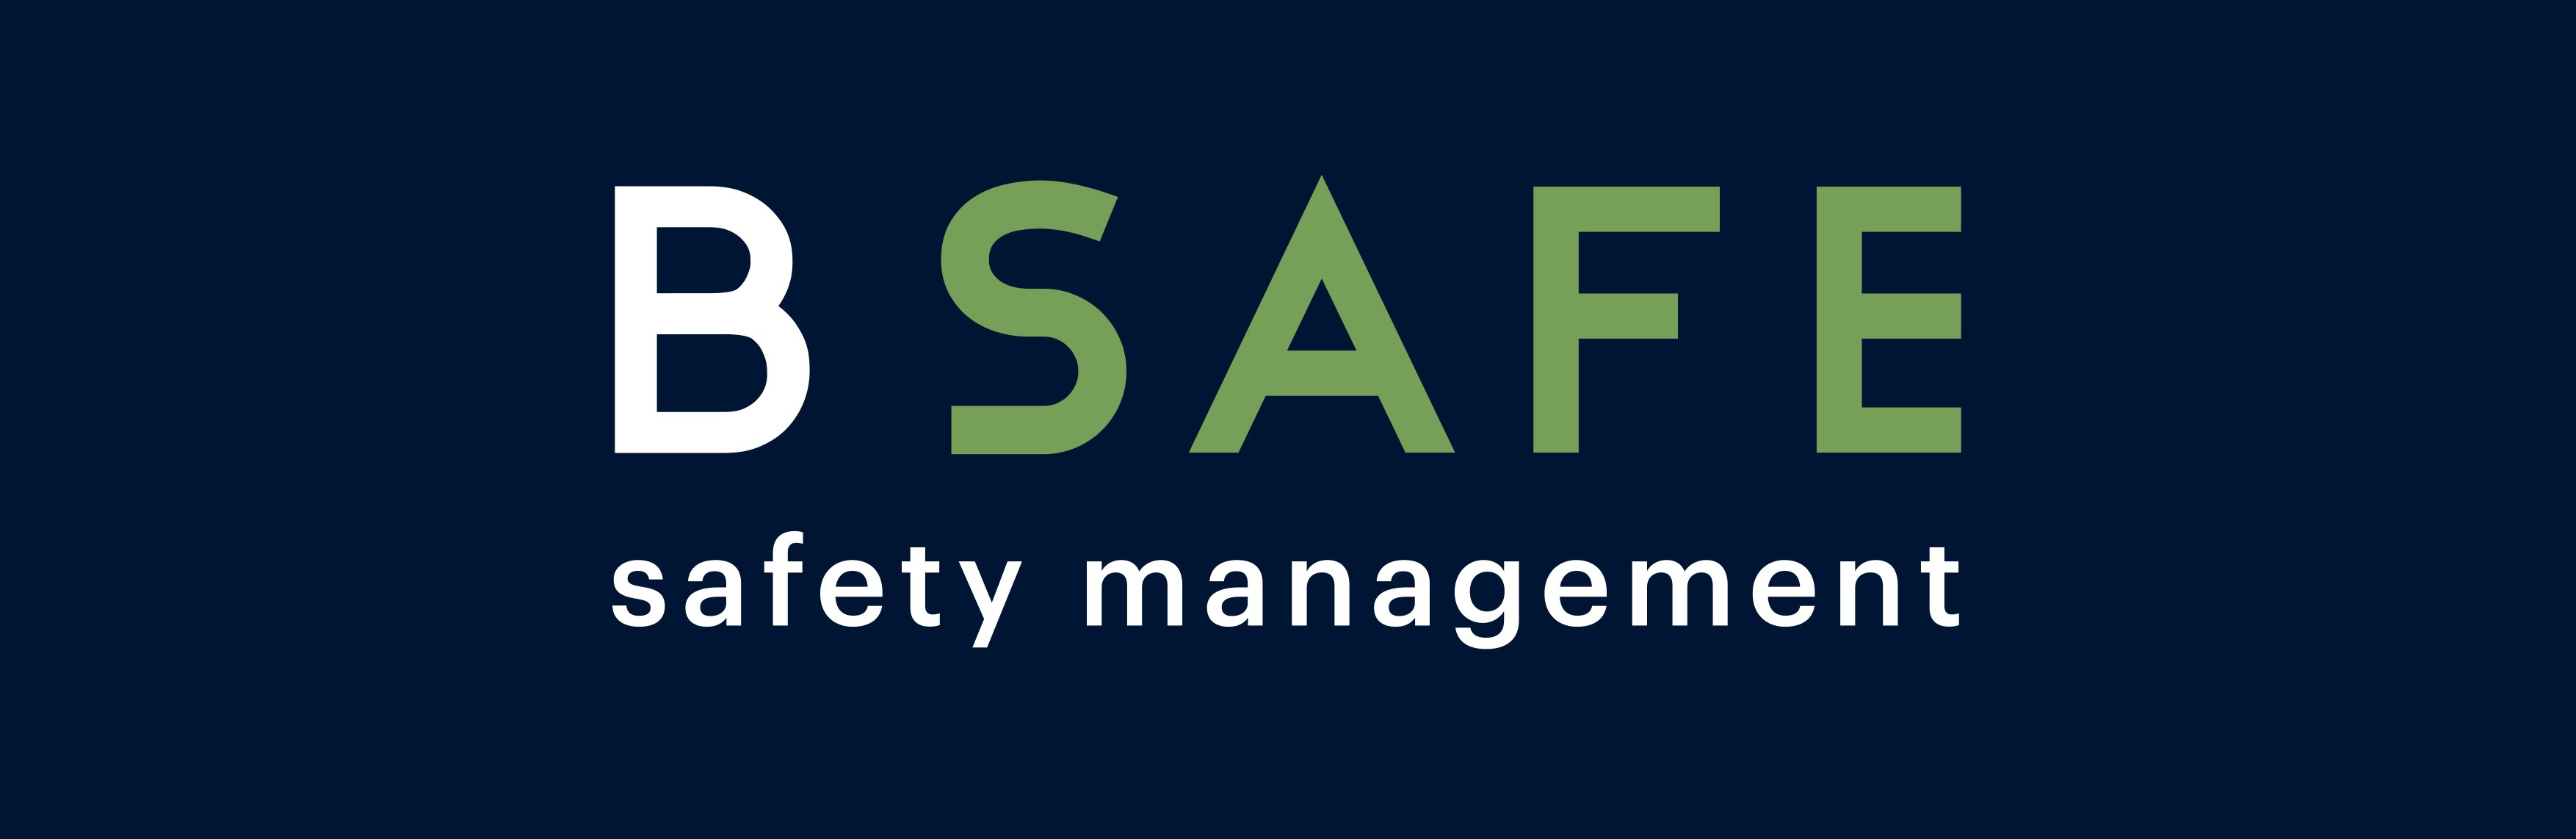 BSafe - Safety Management